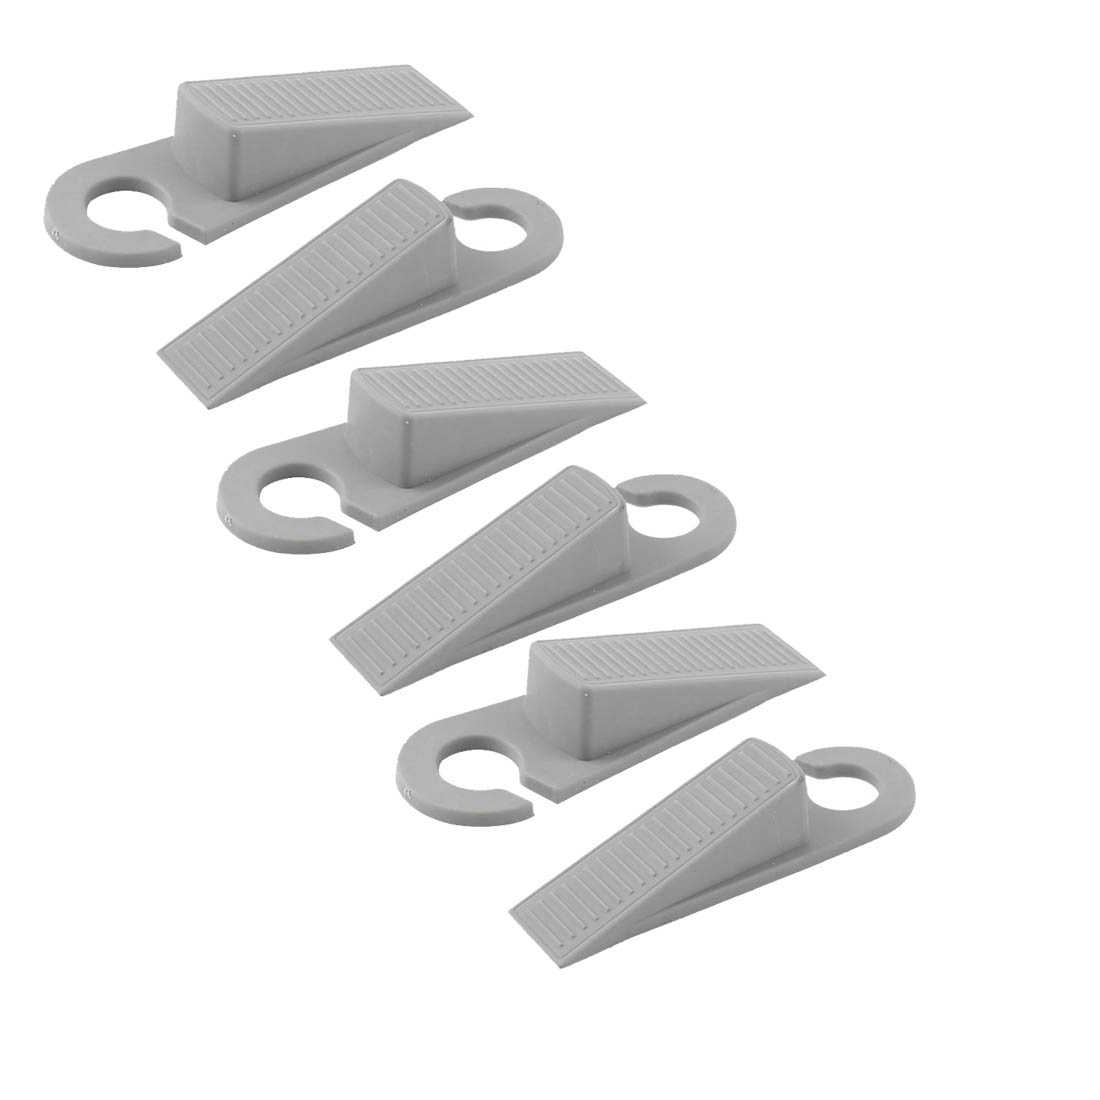 Home Office Floor Rubber Anti-slip Door Stopper Guard Protector Gray 3 Pairs